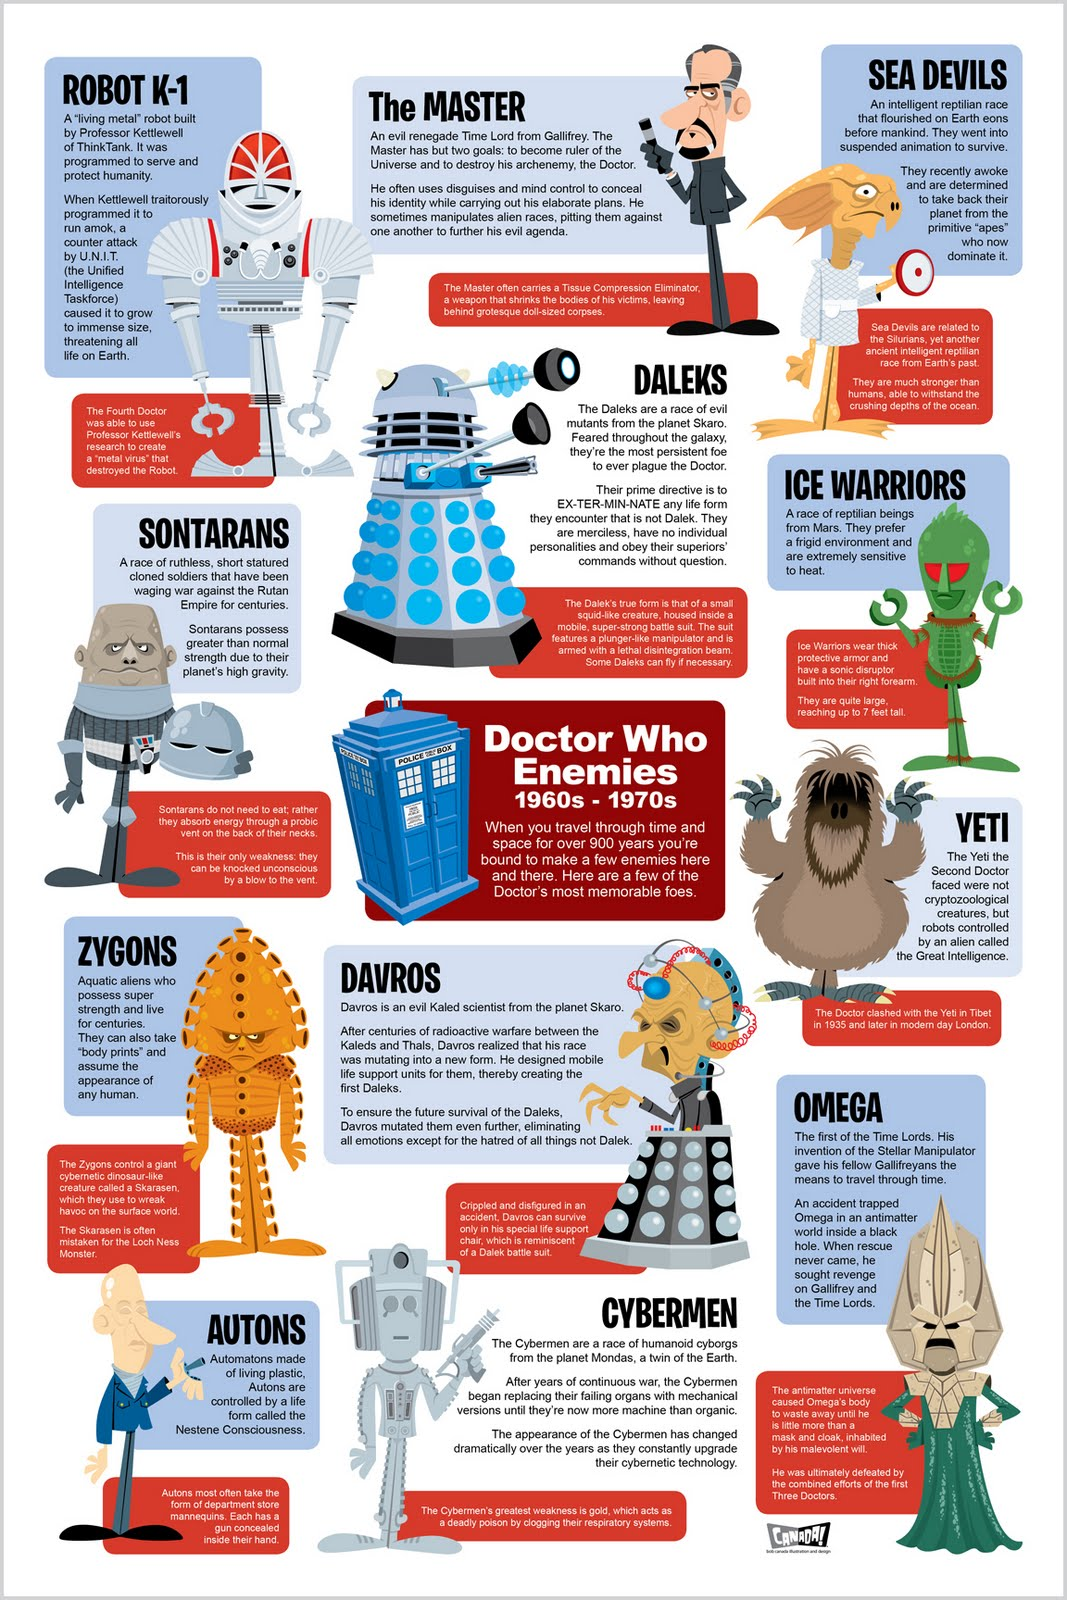 Doctor Who enemies from 1960s to 1970s